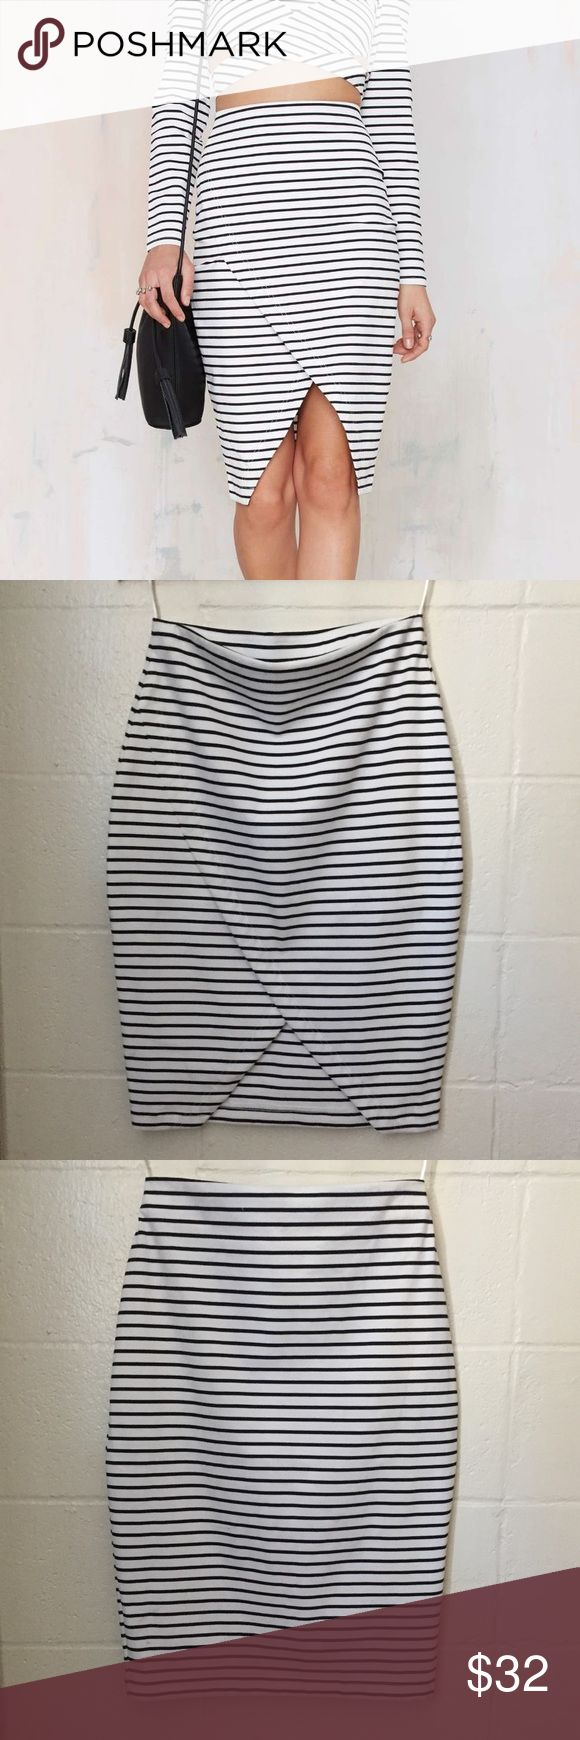 "The Fifth by Nasty Gal striped wrap pencil skirt Asymmetrical, striped, Roadhouse pencil skirt in black and white. Cute for casual events like girls night out! Add some black strappy heels and a black clutch or crossbody.   ✨REASONABLE offers accepted✨  MEASUREMENTS ARE APPROXIMATE Length (waist to longest length of skirt)- 26.5"" Waist: 29-30"" Hips: 39-40"" Nasty Gal Skirts Pencil"